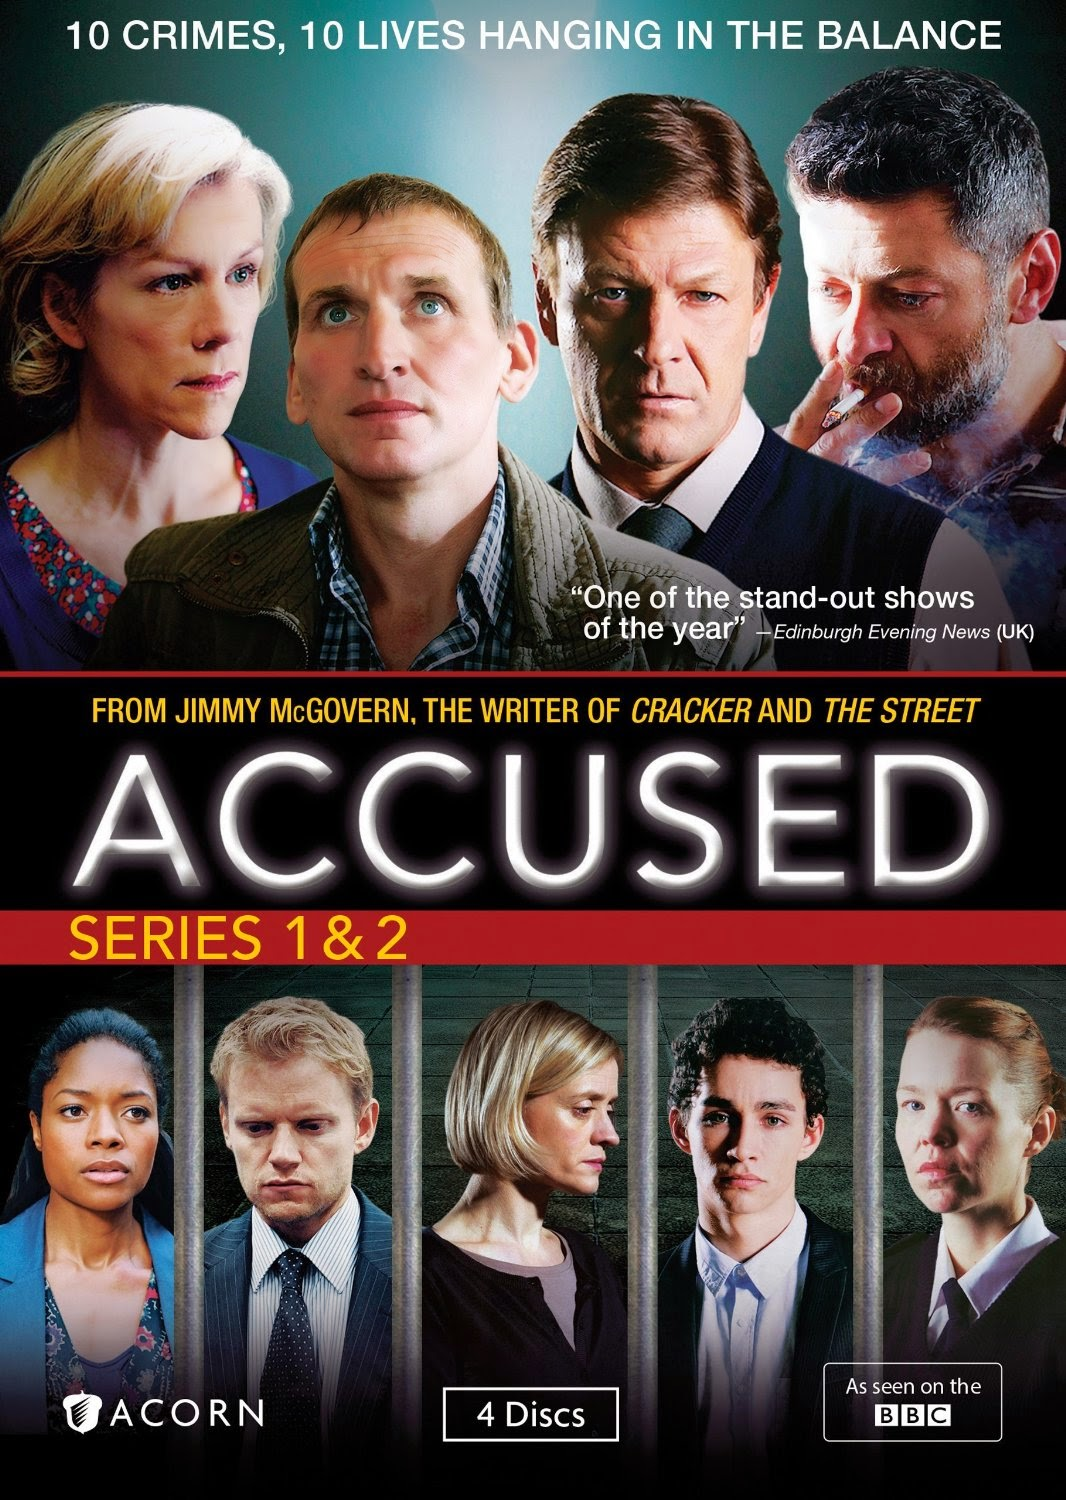 vpl film beat  the accused series 1 2 nr murder arson and other deadly offenses all have a flash point when a person loses control over something or someone